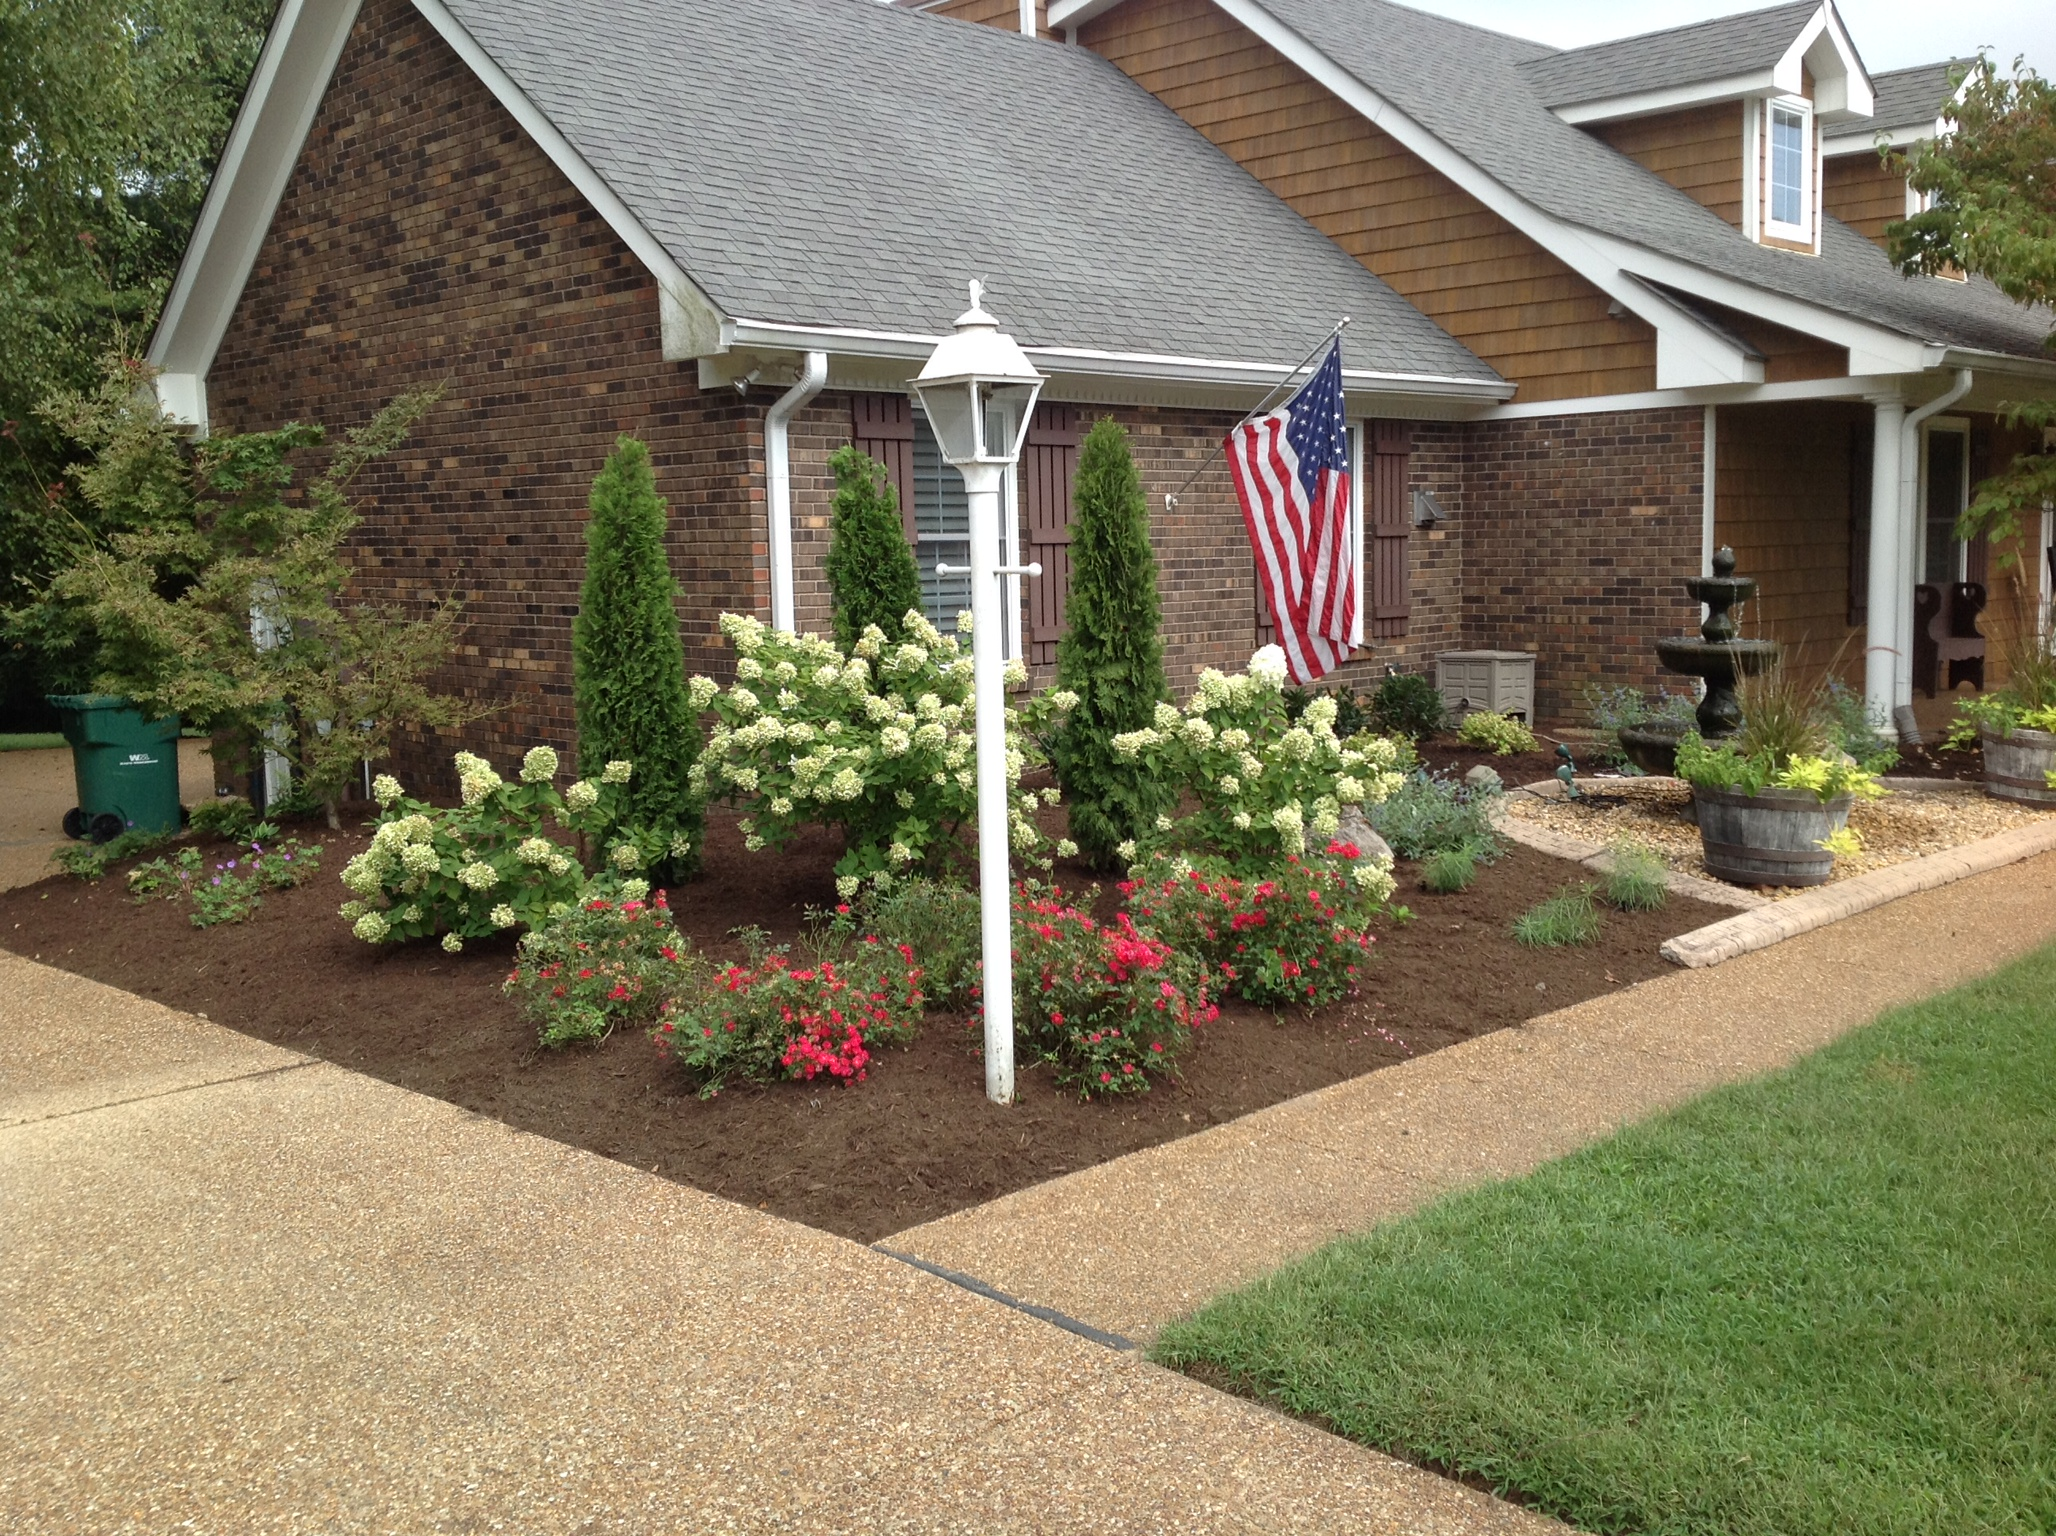 Landscaping and landscaping ideas jvi secret gardens for Garden design nashville tn